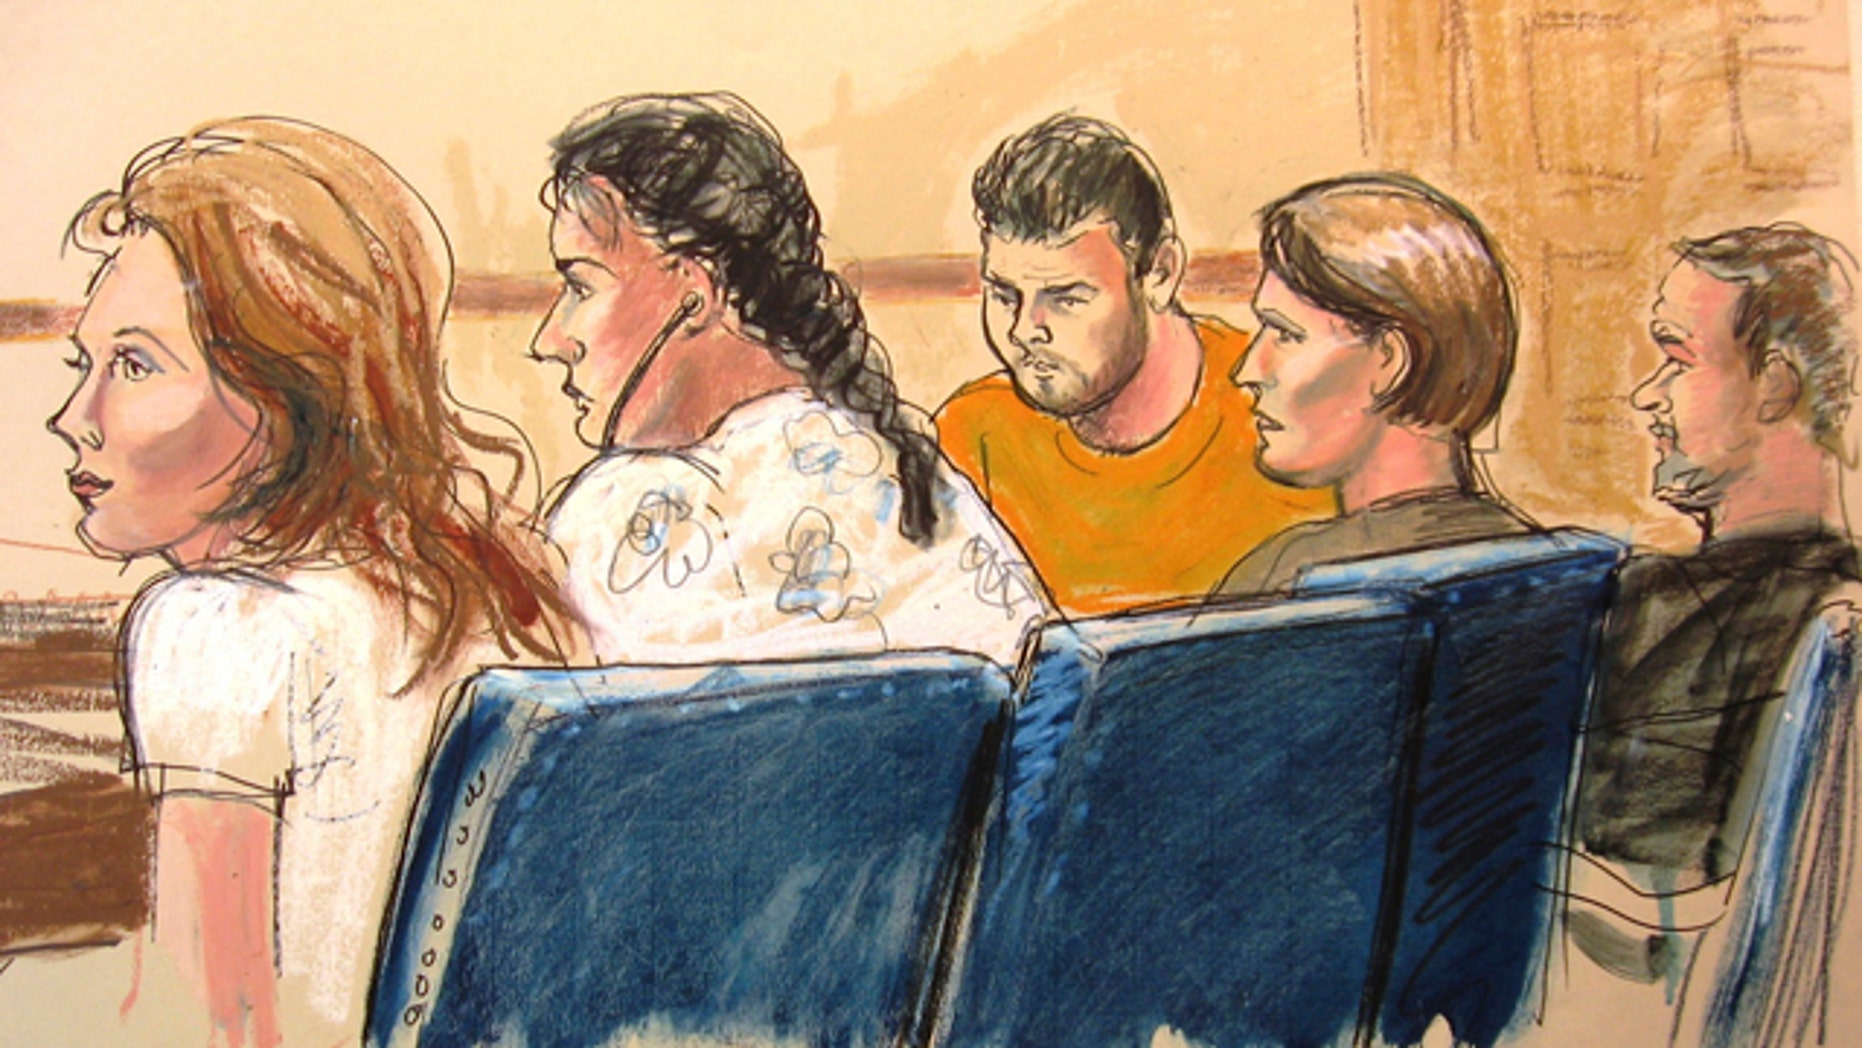 """June 28: A courtroom sketch shows, from left, Anna Chapman, Vicky Pelaez, the defendant known as """"Richard Murphy"""", the defendant known as """"Cynthia Murphy"""" and the defendant known as """"Juan Lazaro"""" in a federal court in New York City."""